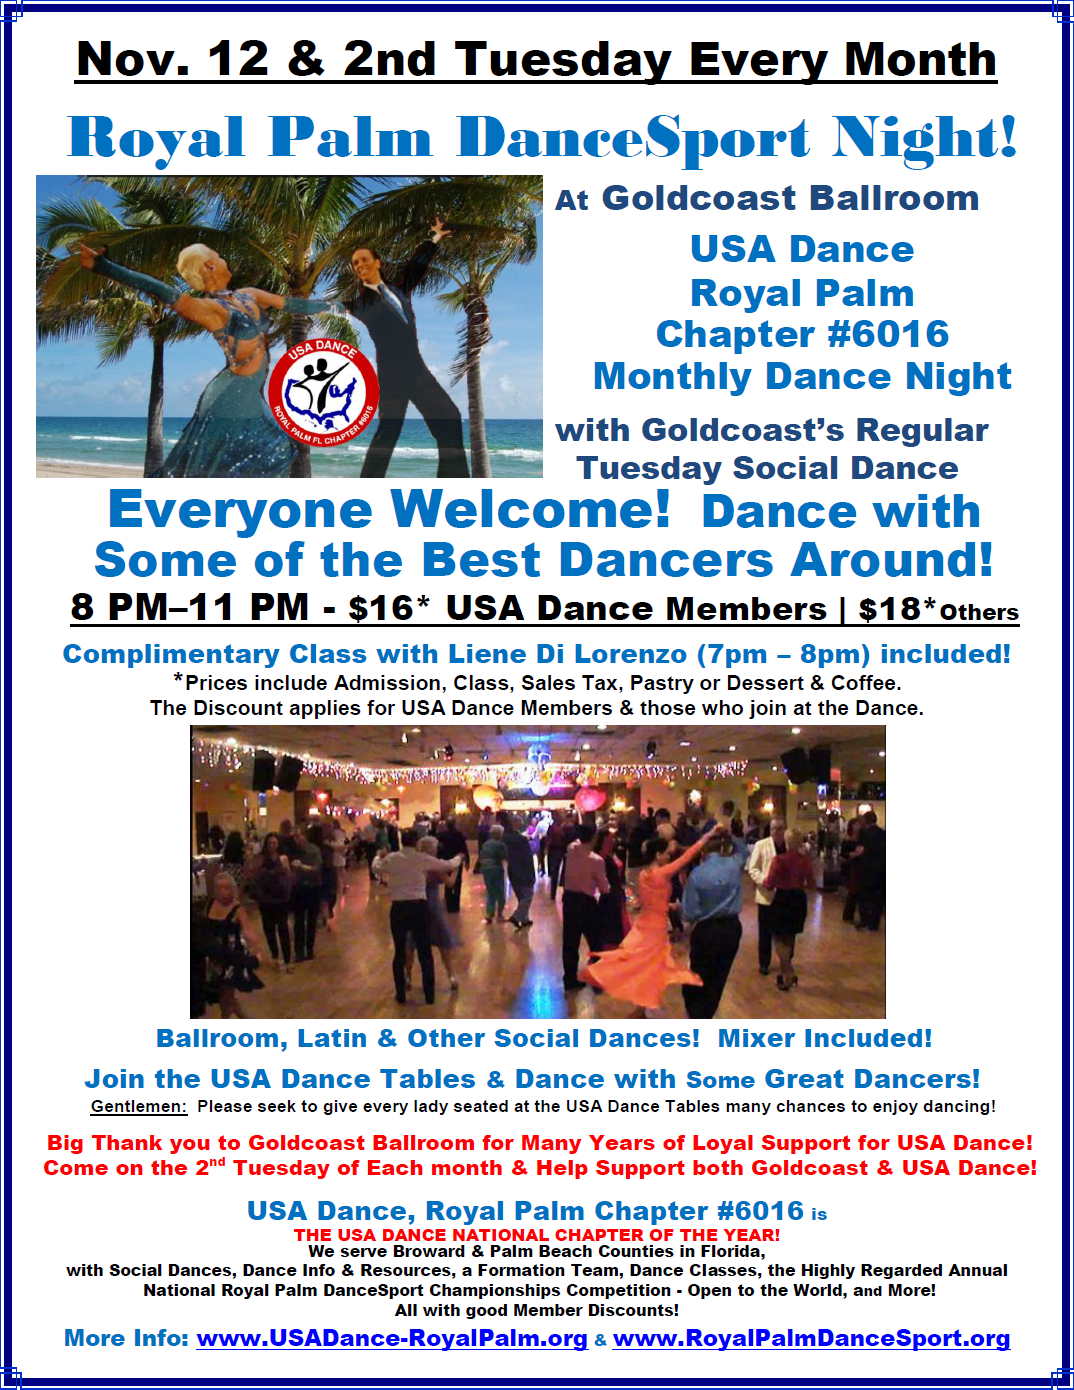 USA Dance, Royal Palm Chapter Monthly Dance: November 12 & the 2nd Tuesday Every Month - at Goldcoast Ballroom!